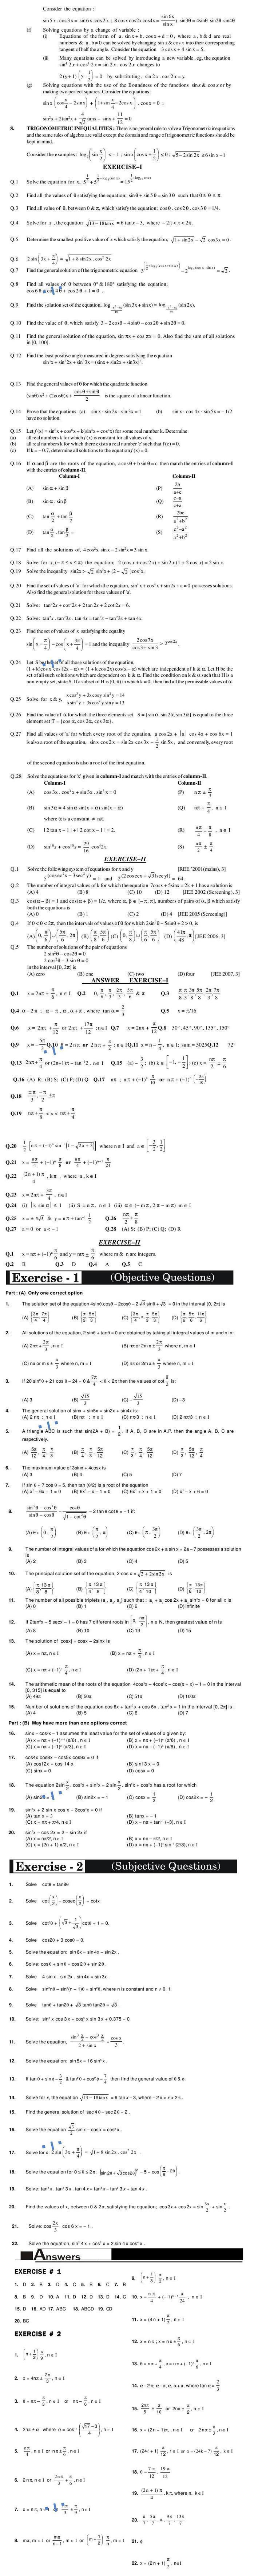 Maths Study Material - Chapter 23